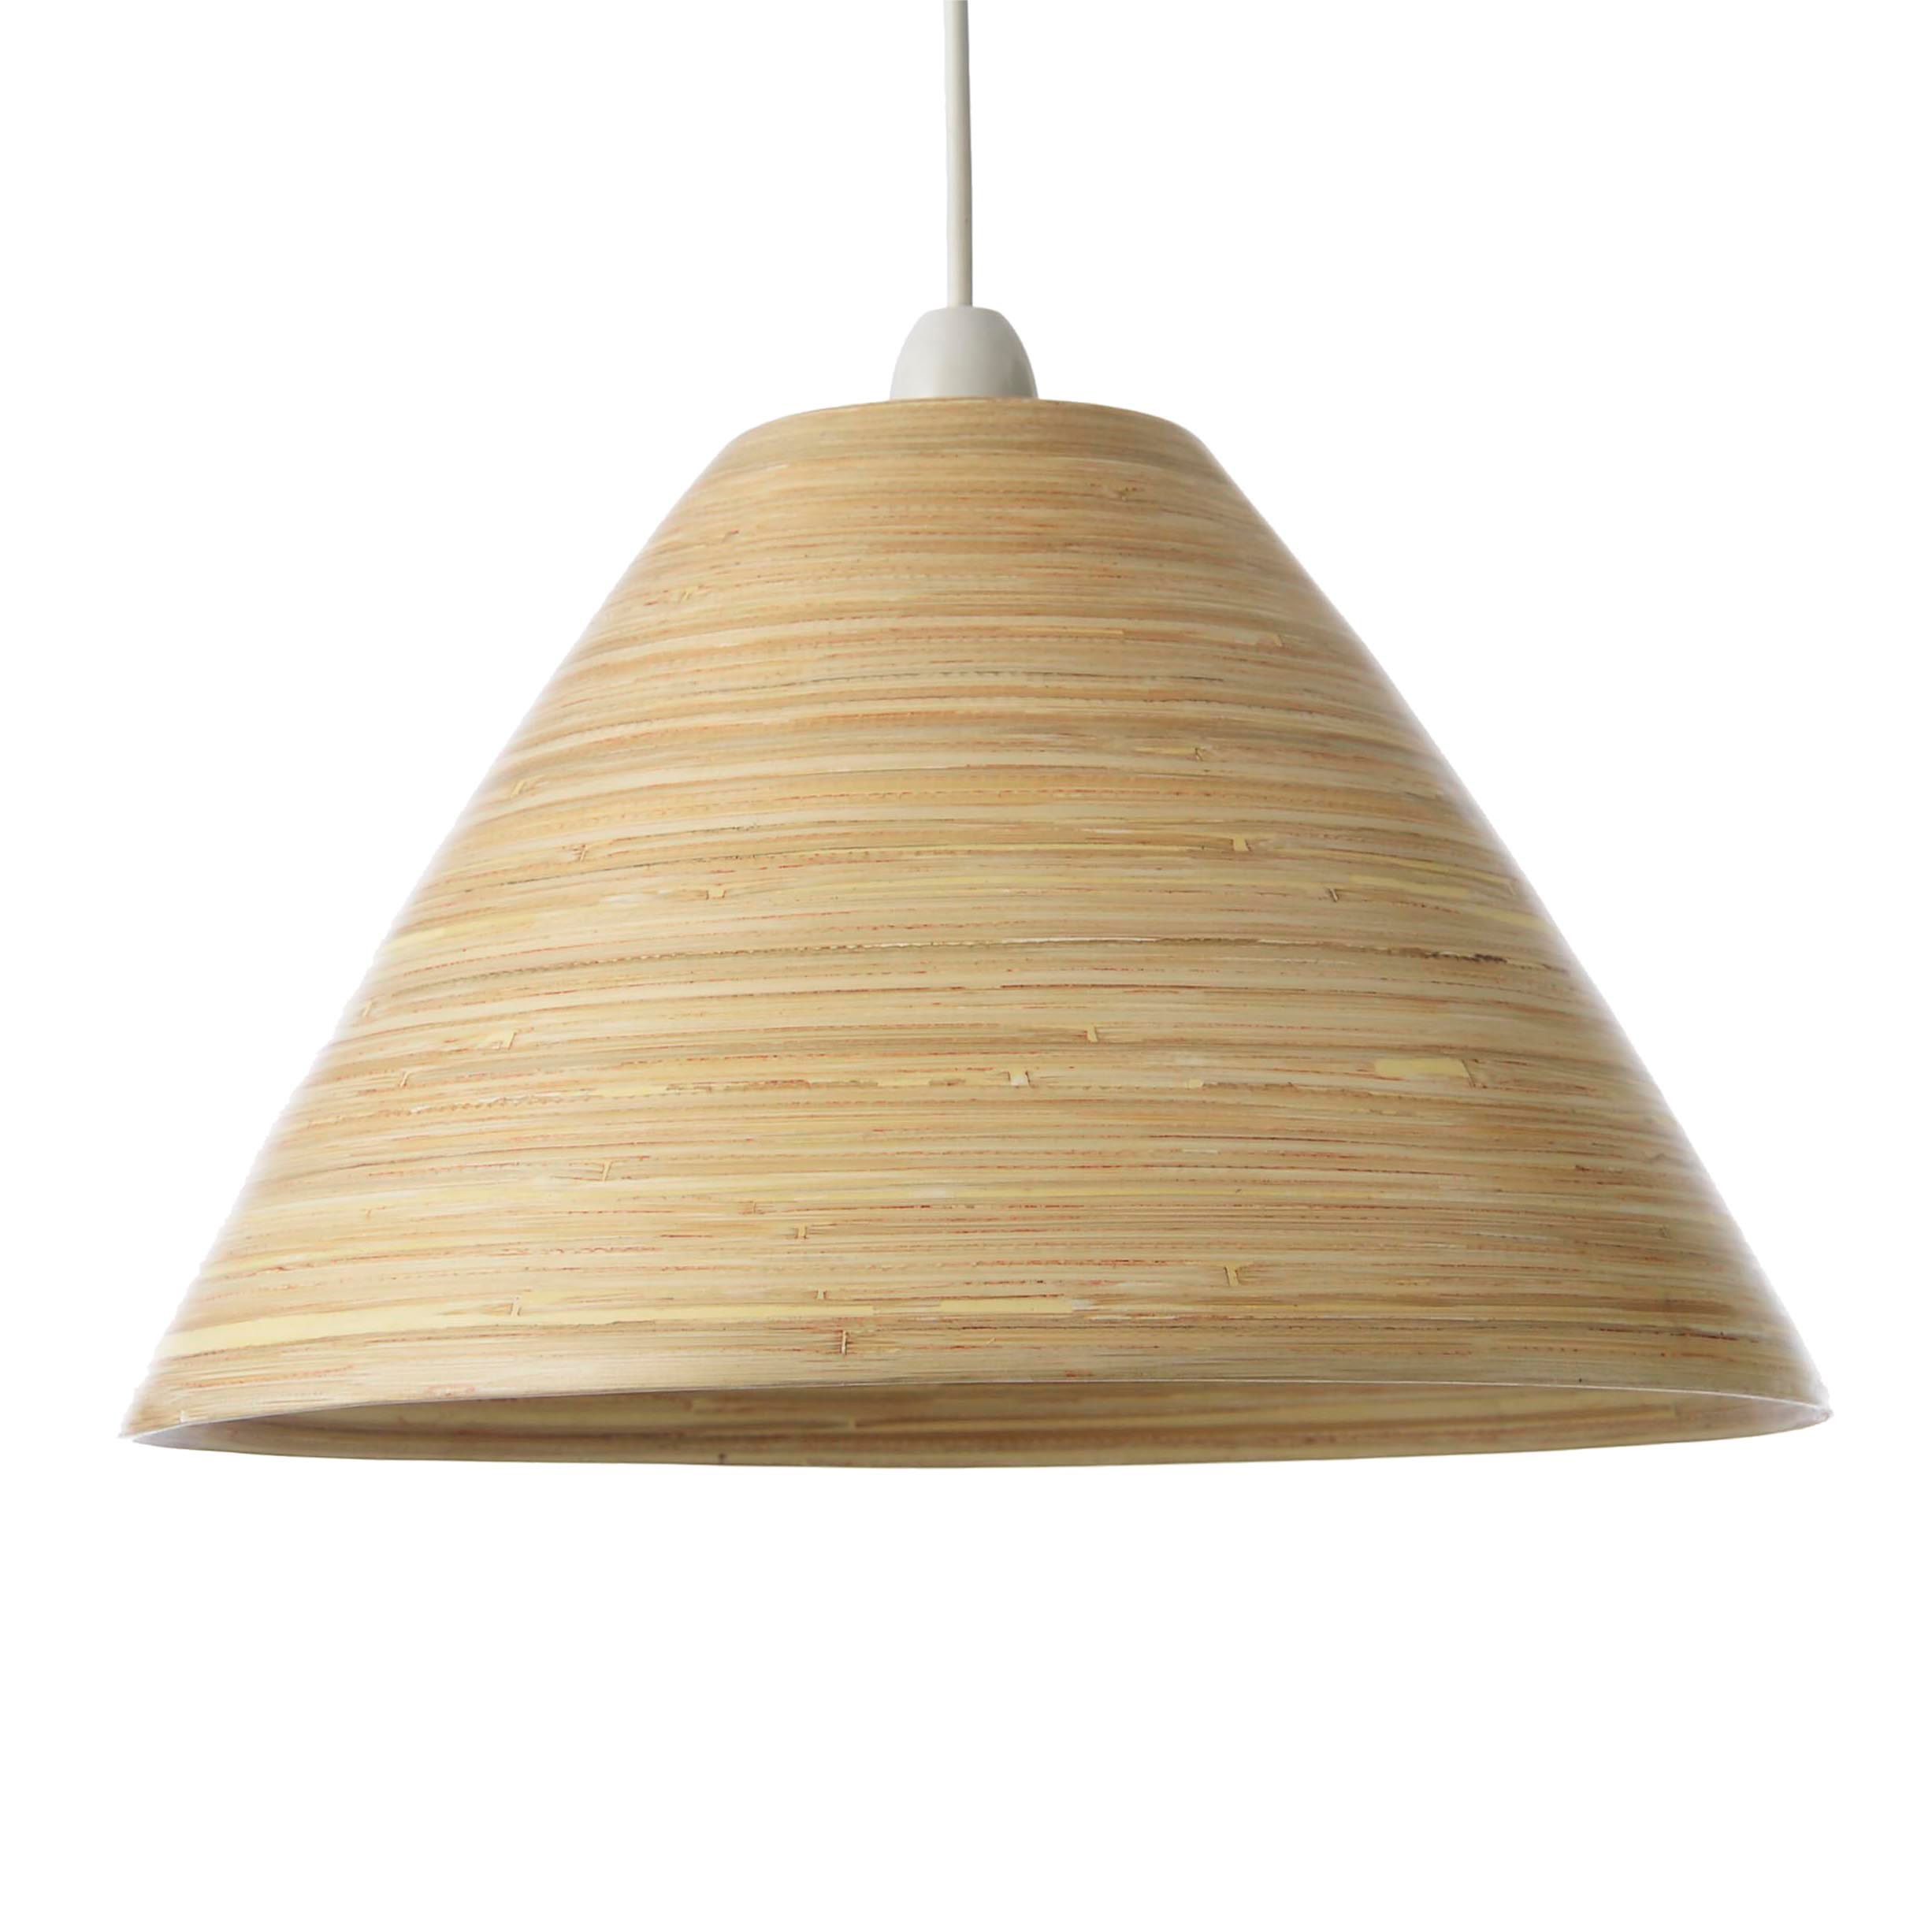 Colours cruse natural bamboo lamp shade d350mm natural lamps colours cruse natural lamp shade d35cm departments diy at bq aloadofball Gallery